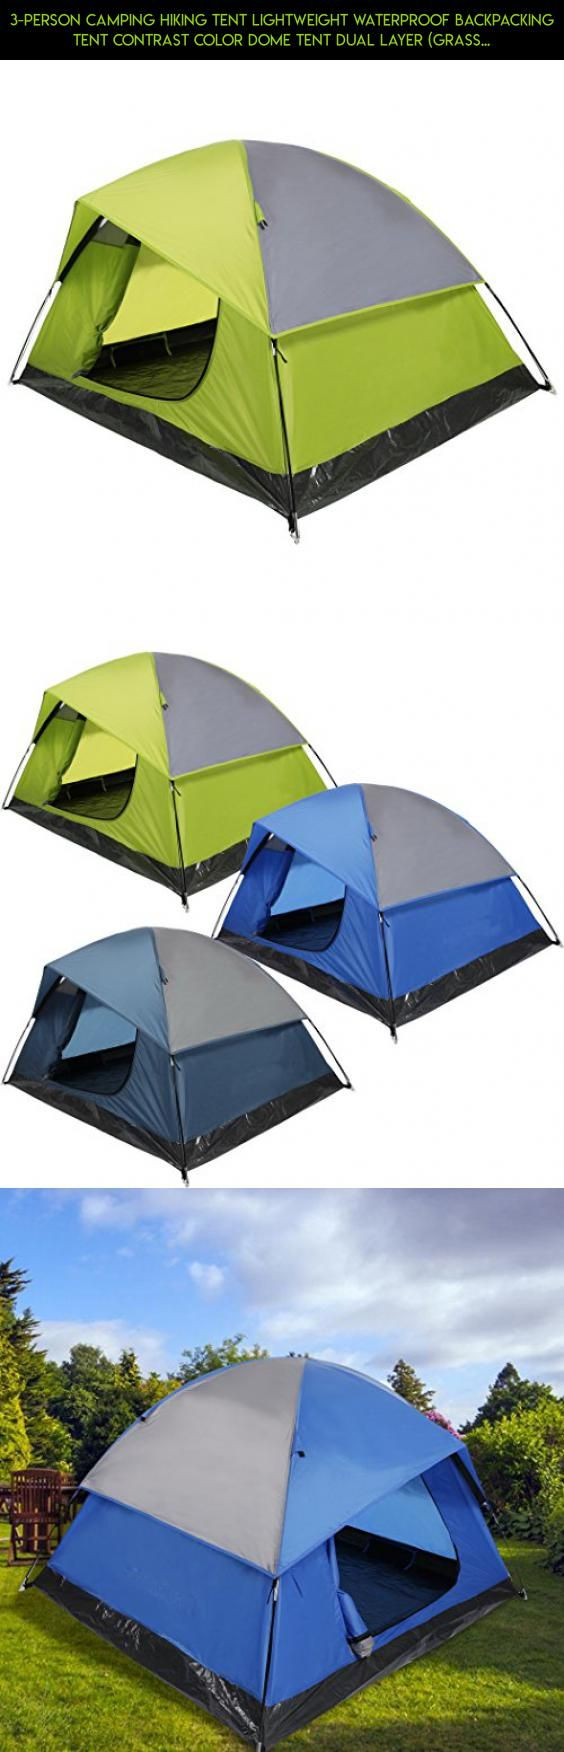 3-Person Camping Hiking Tent Lightweight Waterproof Backpacking Tent Contrast Color Dome Tent Dual Layer (grass green) #cube #fpv #kit #gadgets #racing #camera #shopping #products #parts #tech #drone #organizer #technology #8 #plans #storage